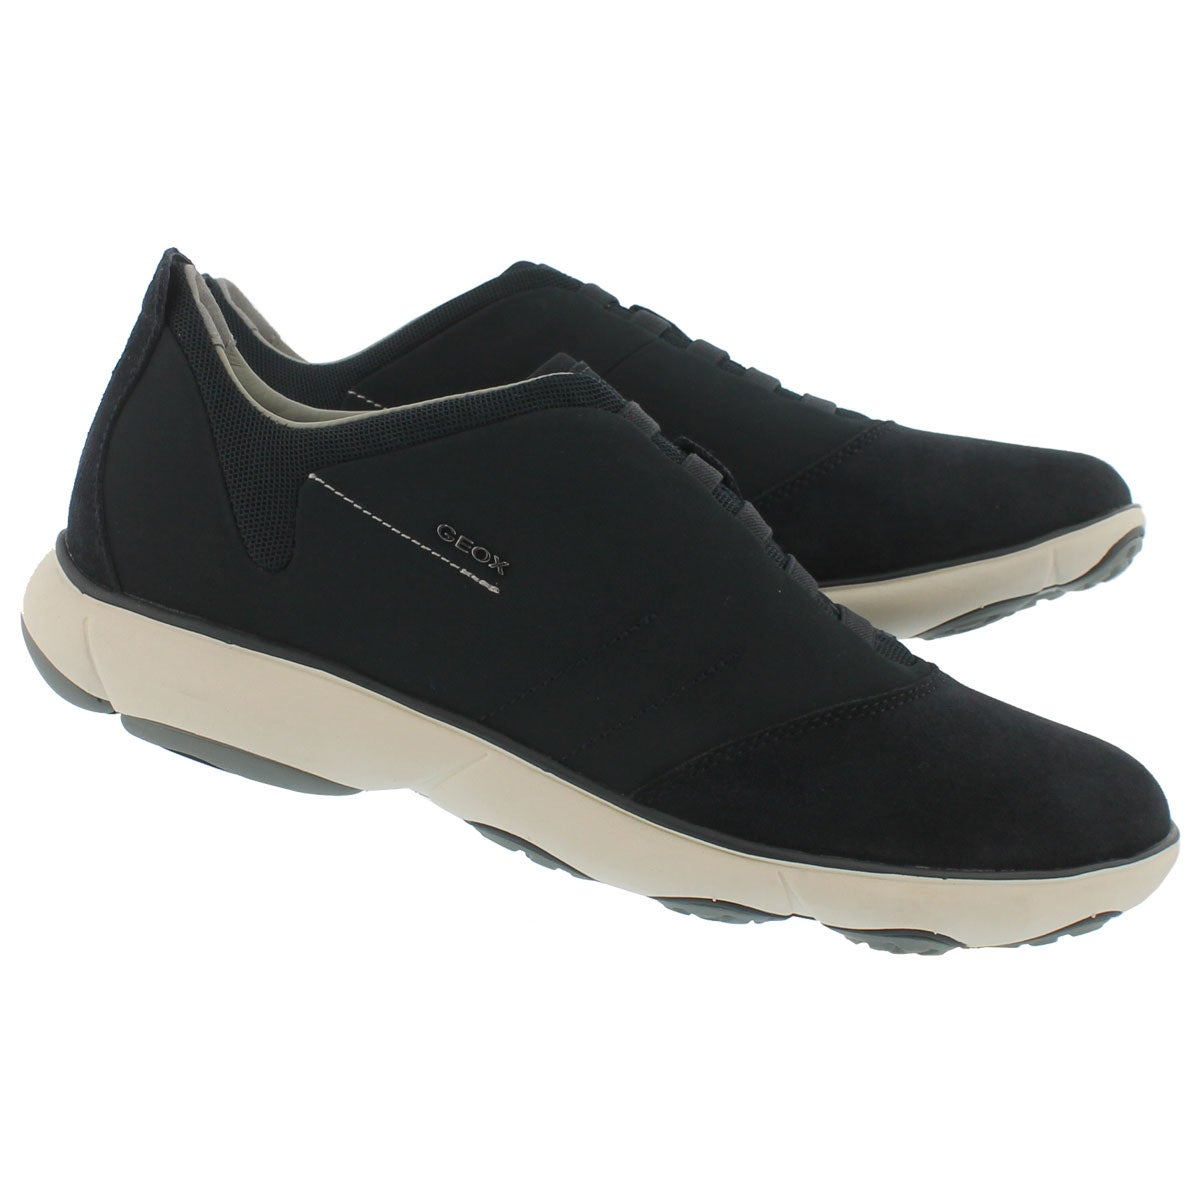 Mns Nebula navy lace up running shoe